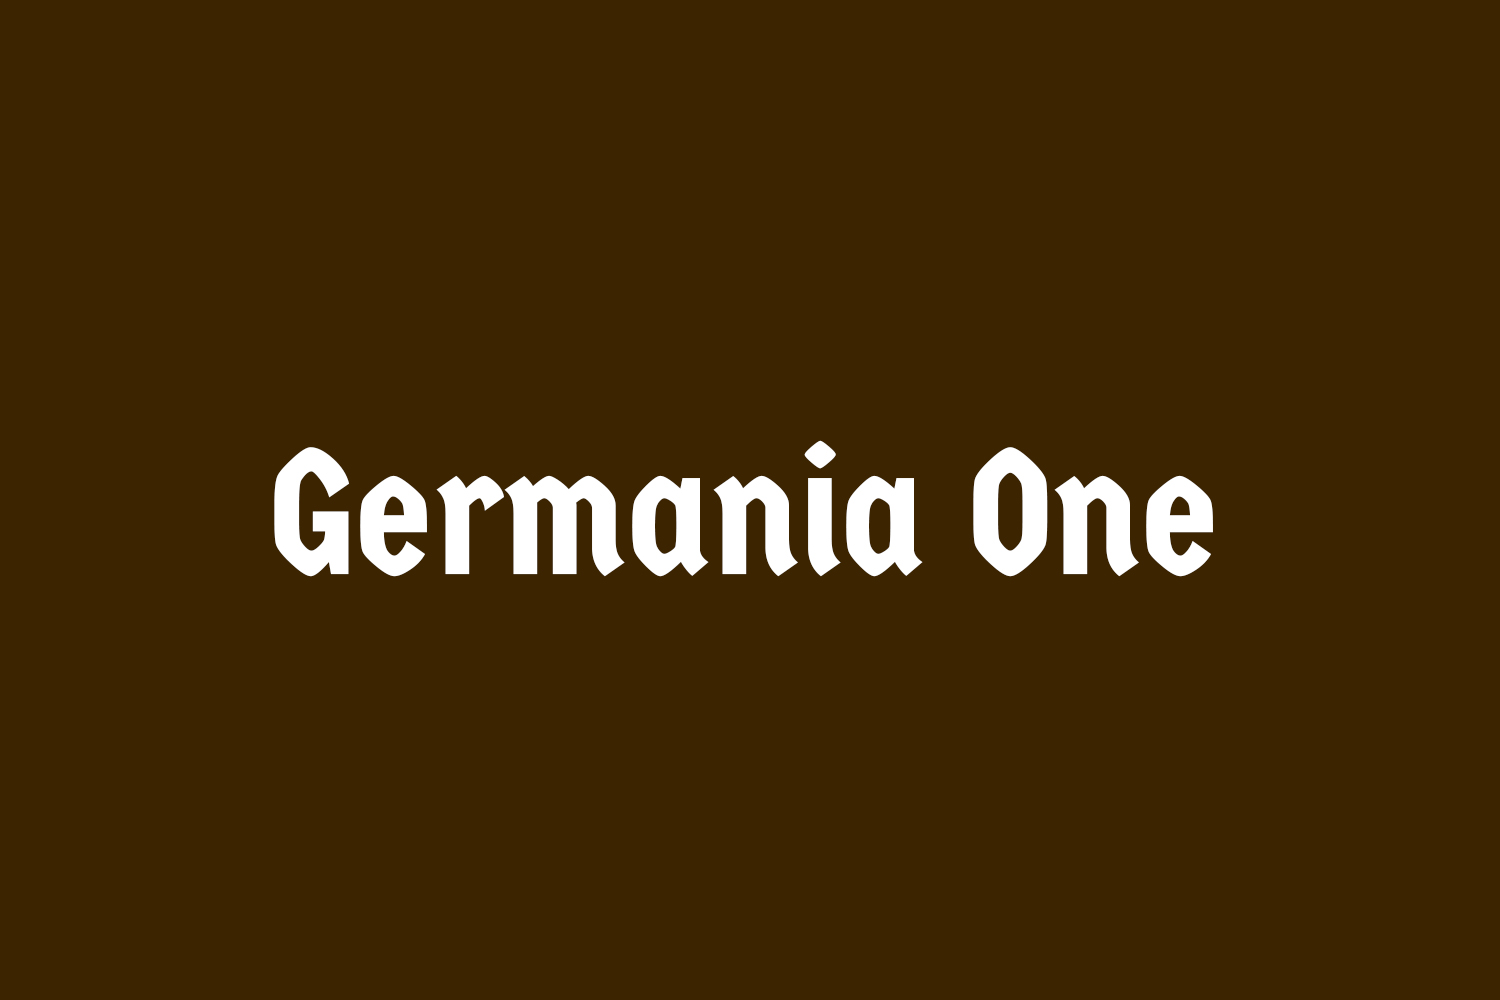 Germania One